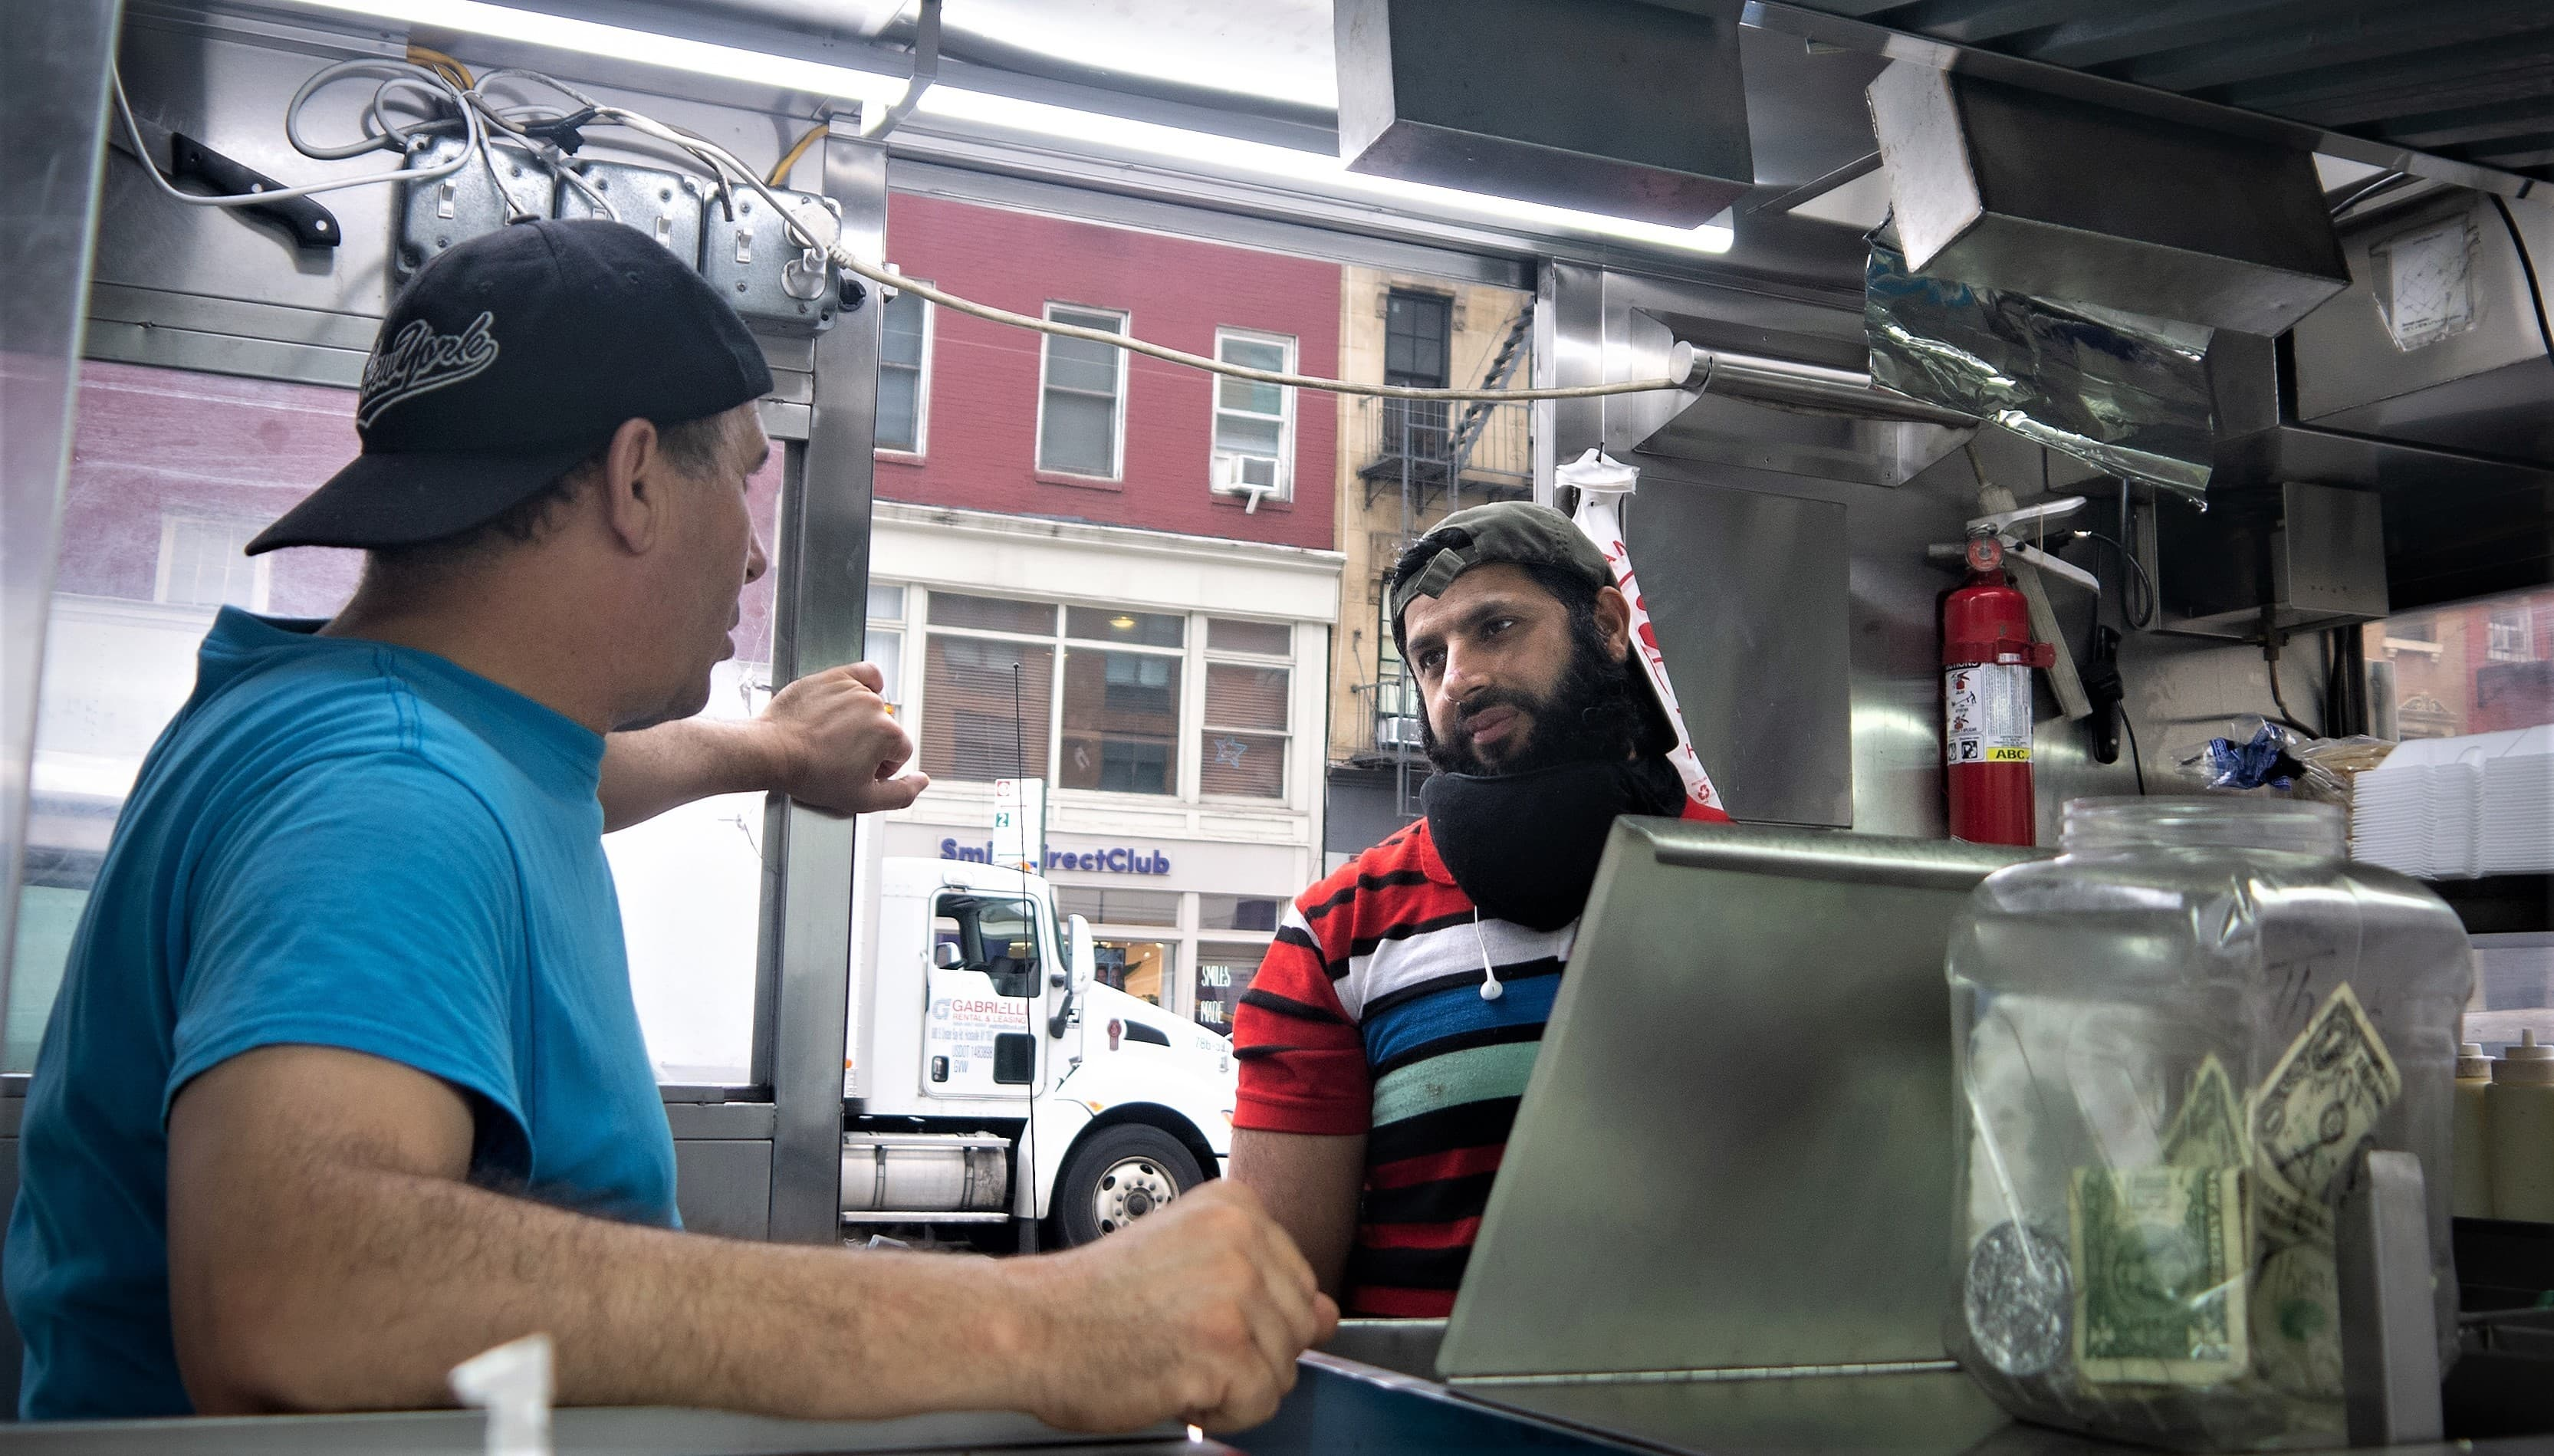 During Adnan's shift he is usually joined by a worker who is also an immigrant from Morocco.